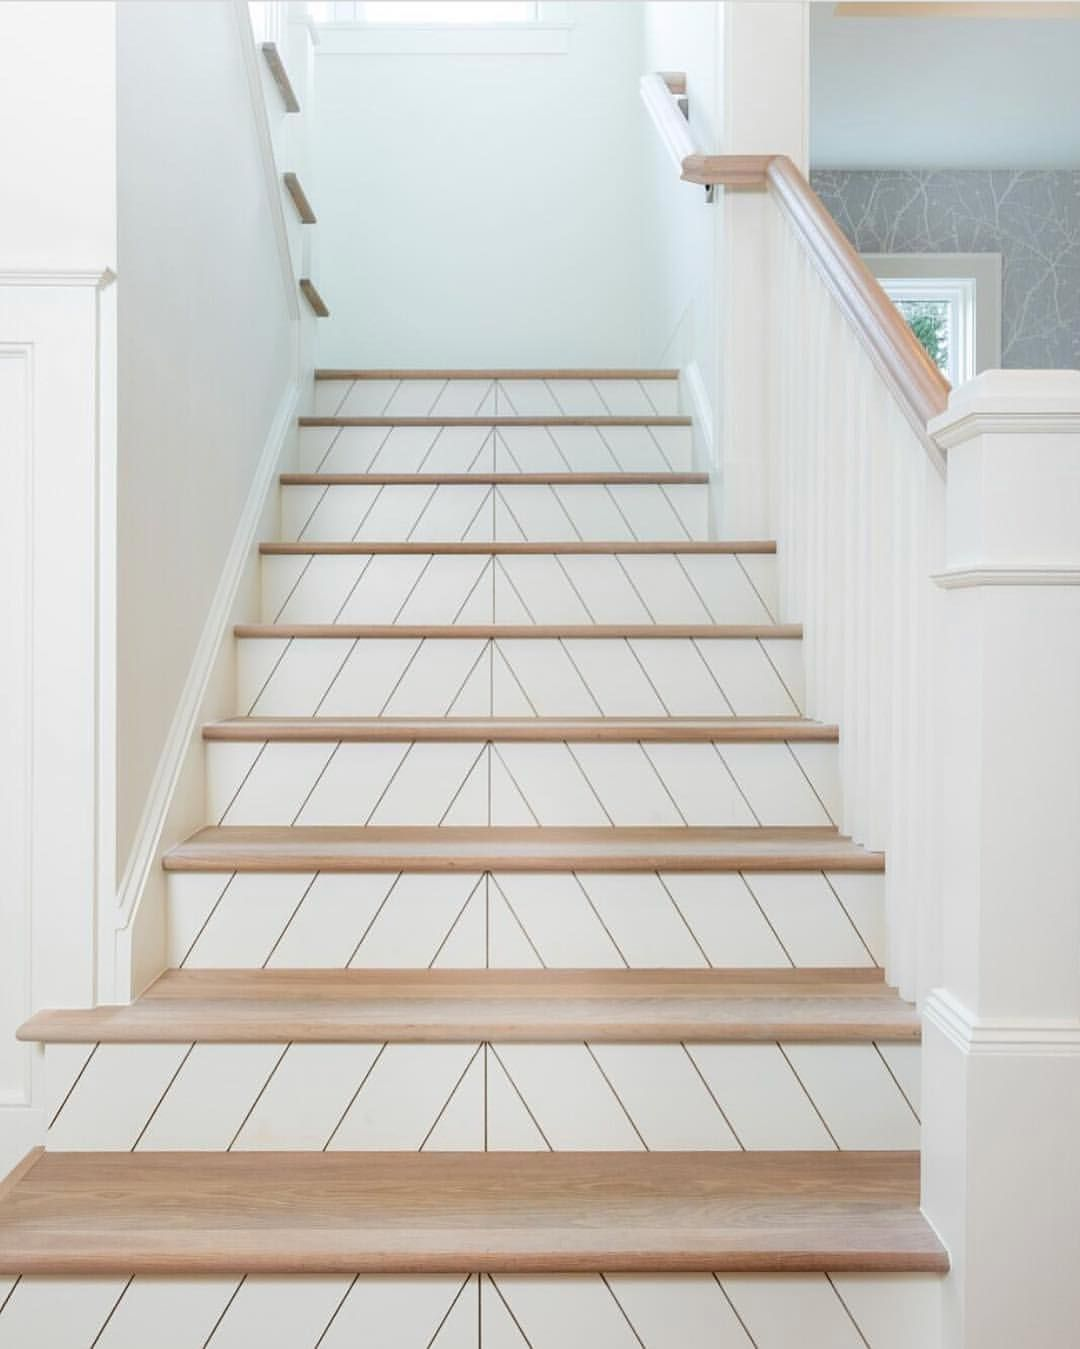 80 Awesome Modern Farmhouse Staircase Decor Ideas: I Love These Stairs @pikeproperties Did! Shiplap! So Cool